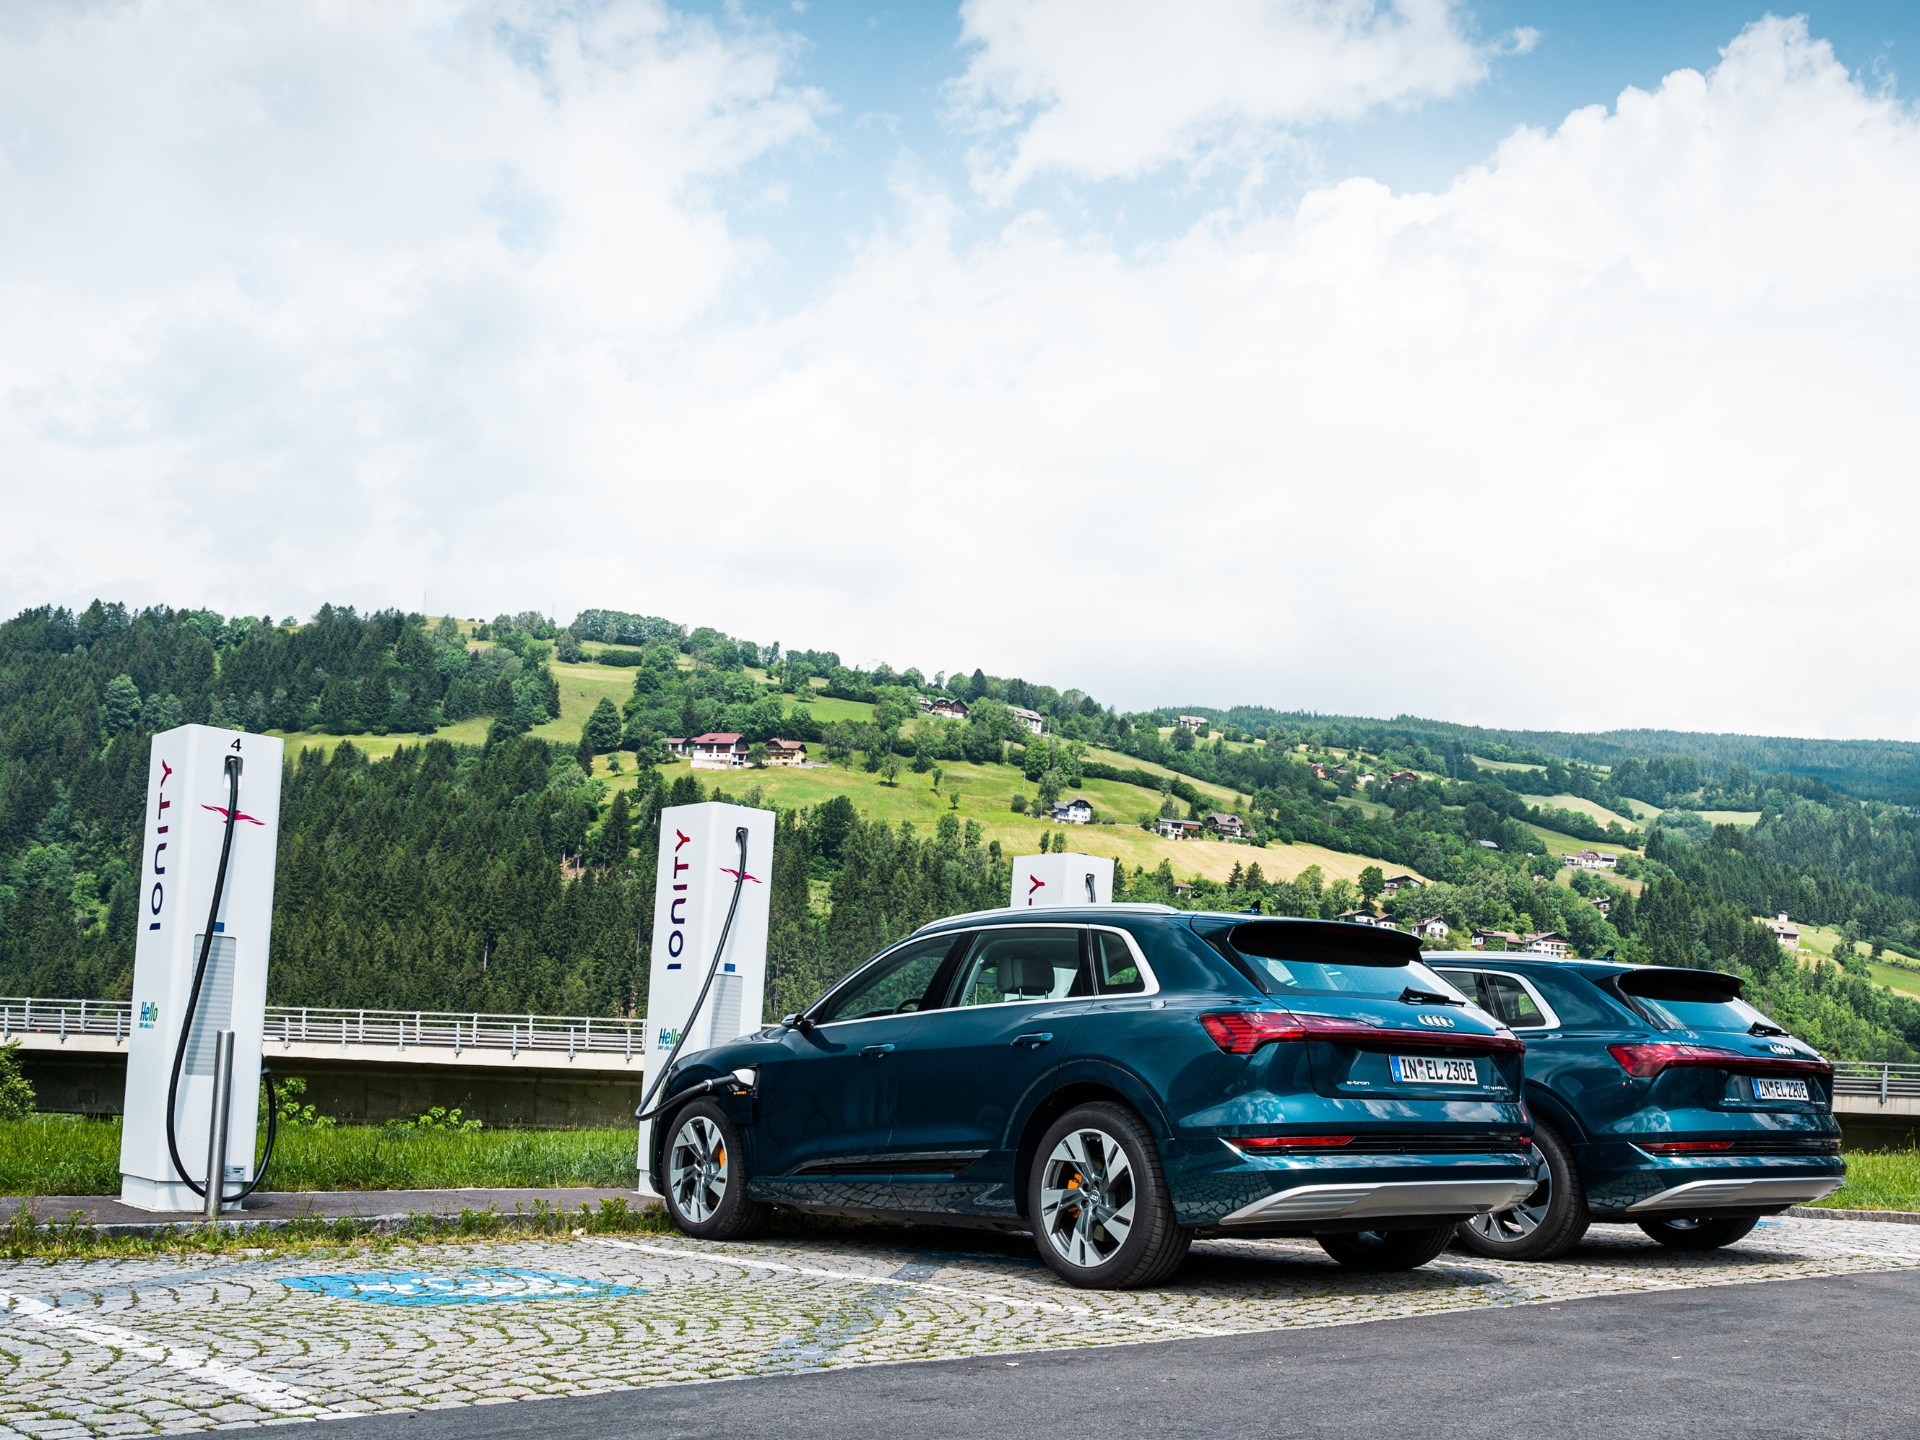 Three Audi e-trons at the IONITY quick-charging station.